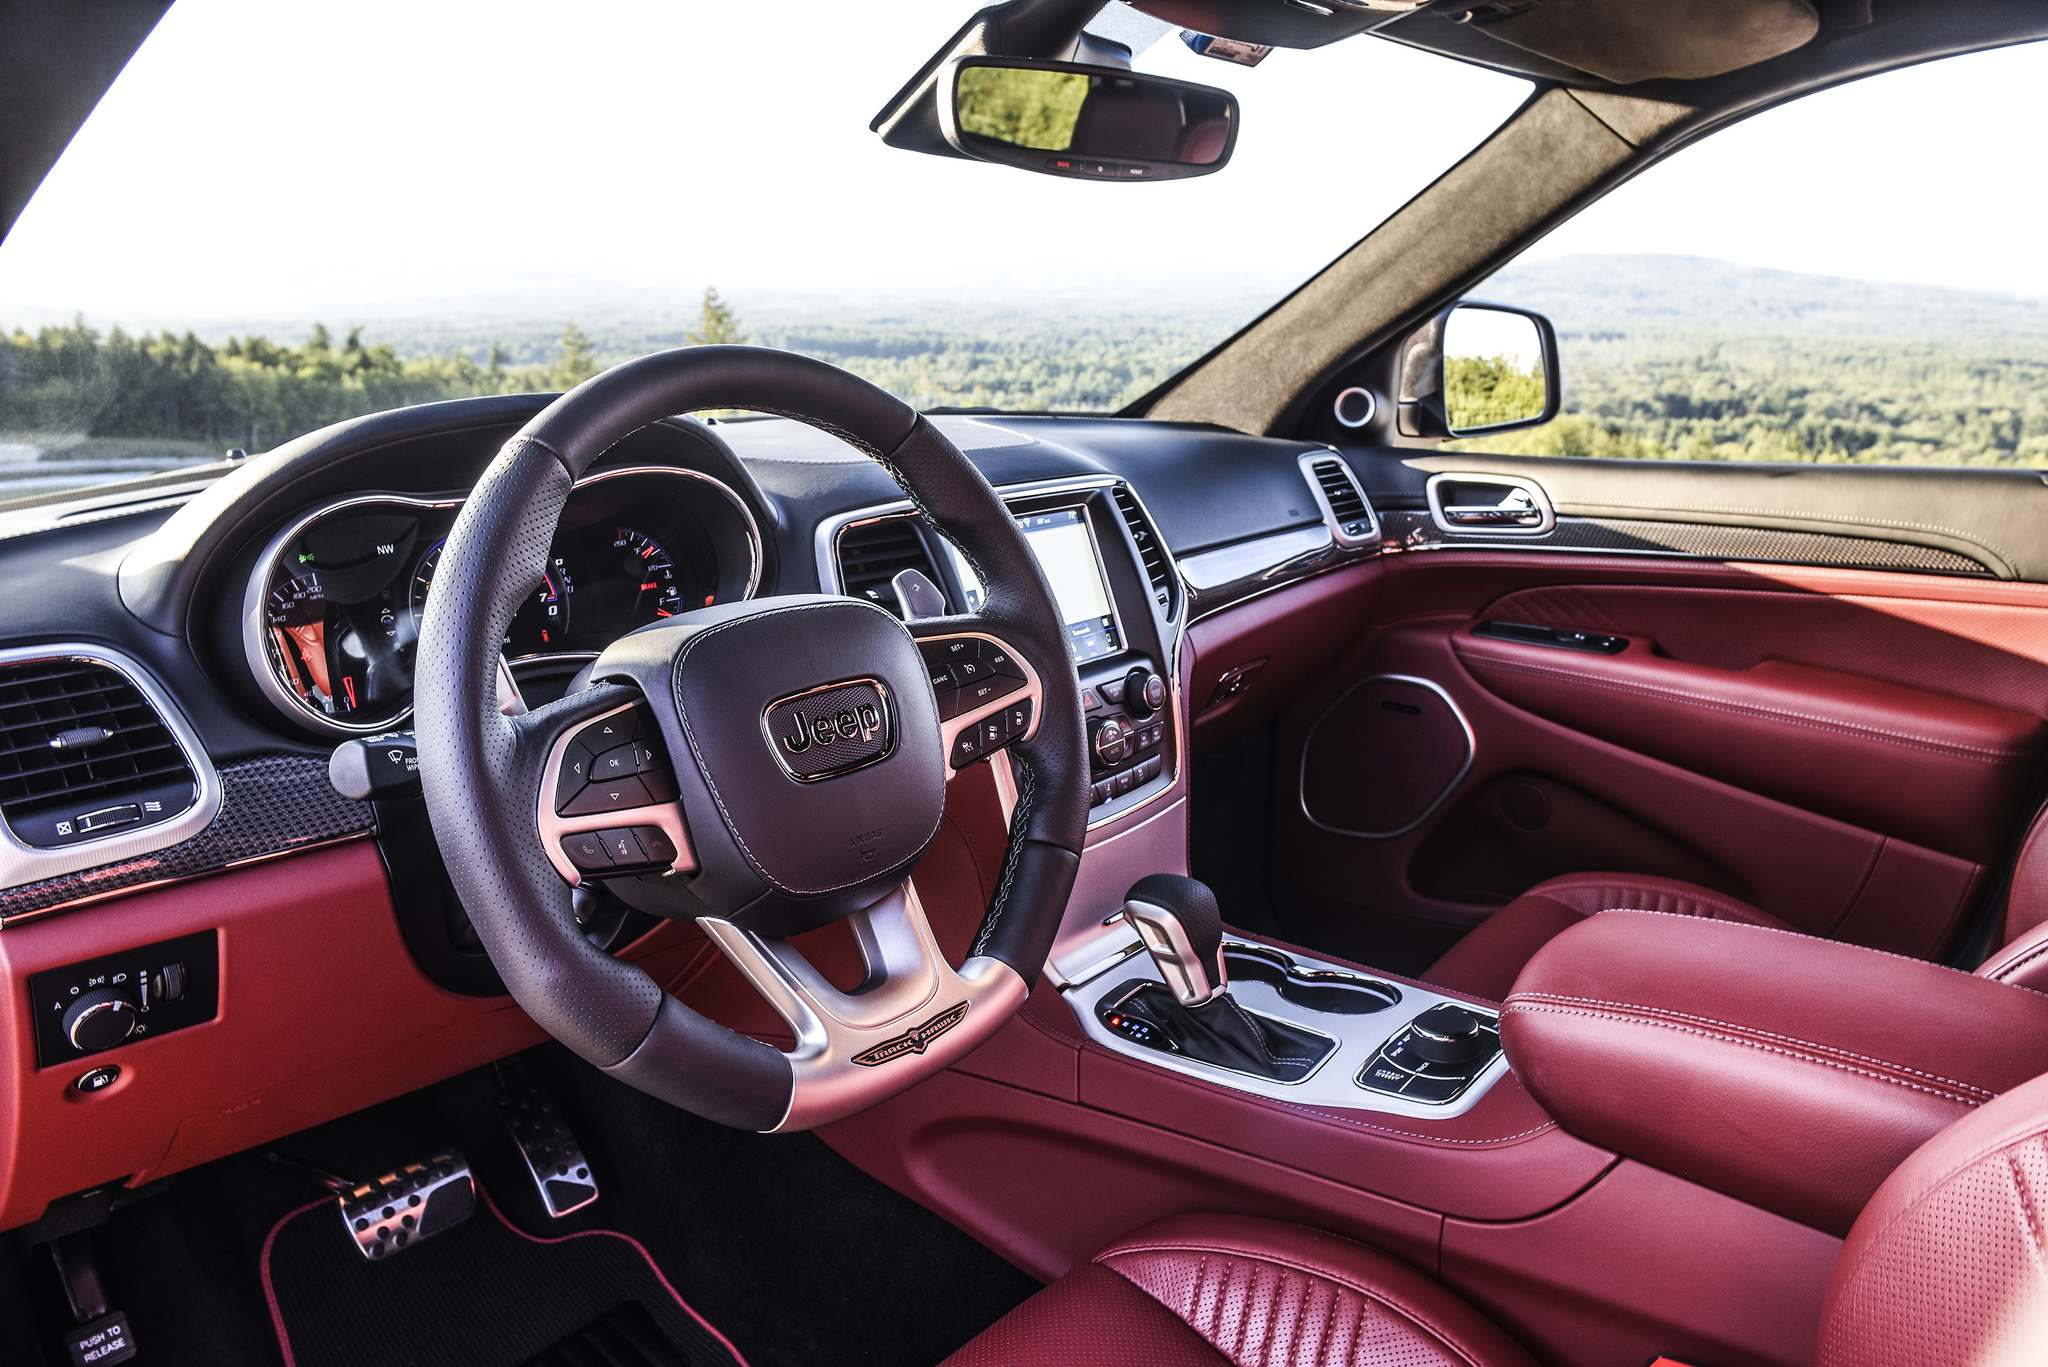 The Trackhawk's interior is uncluttered and the dash features an 8.4-inch touch screen.